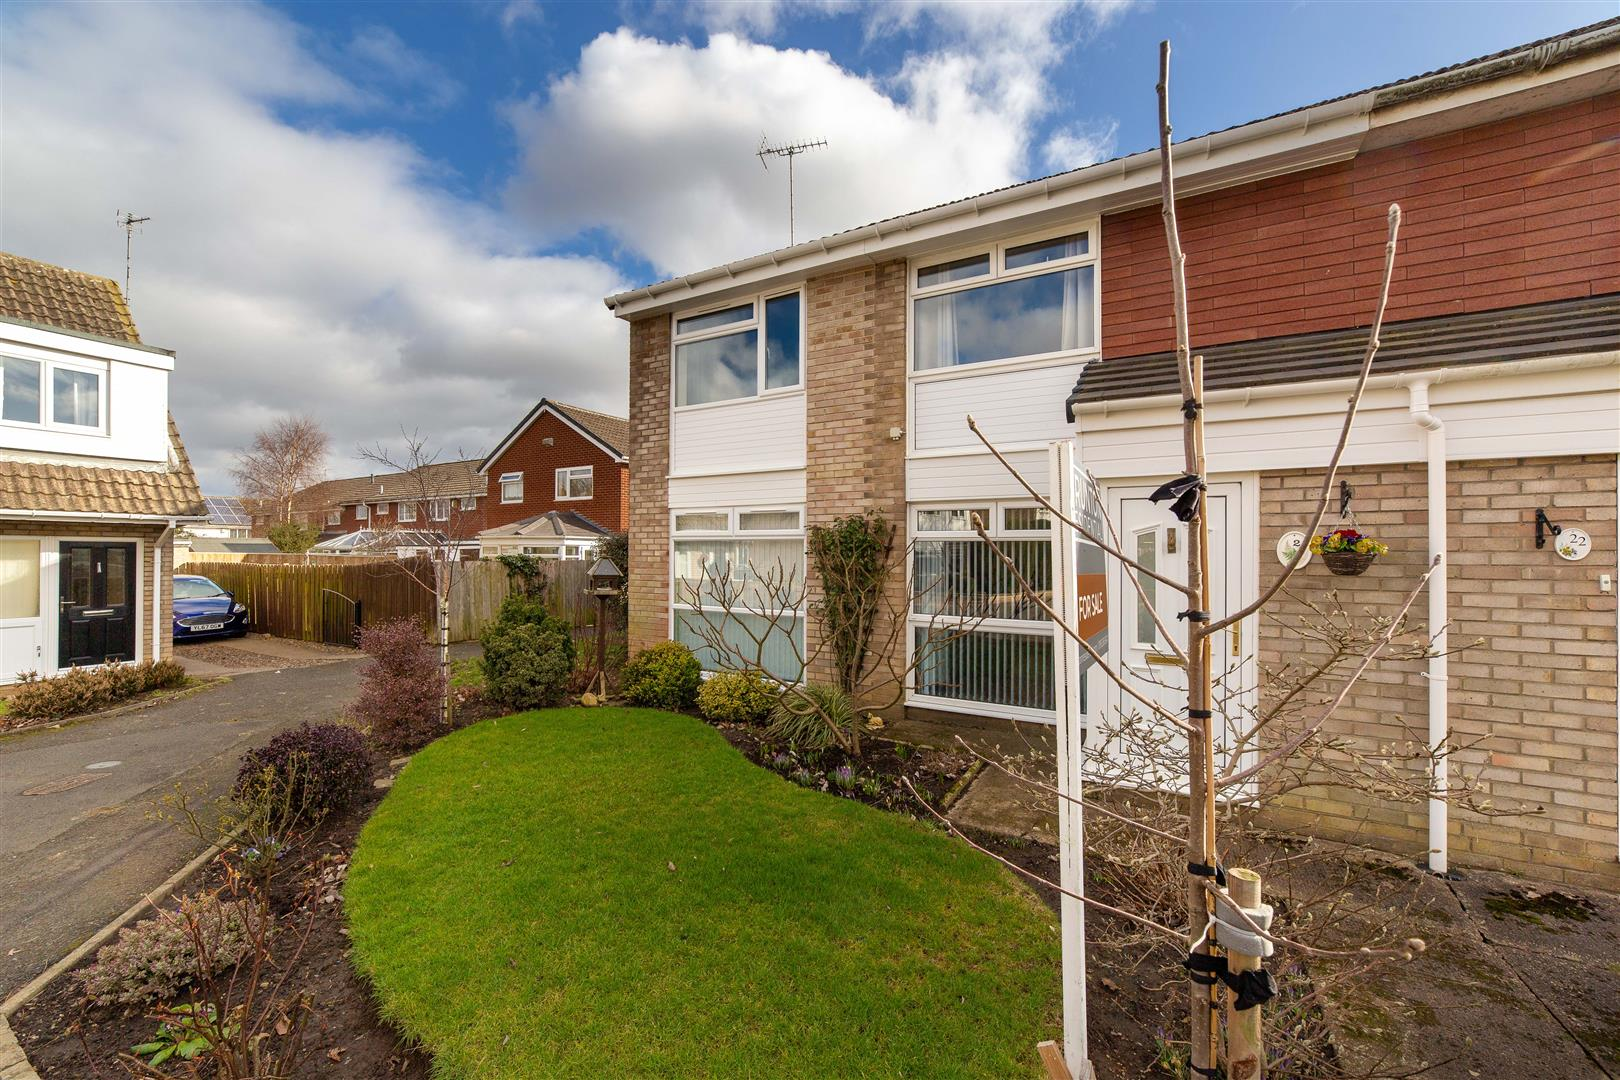 3 bed semi-detached house for sale in Kingston Park, NE3 2XH 0